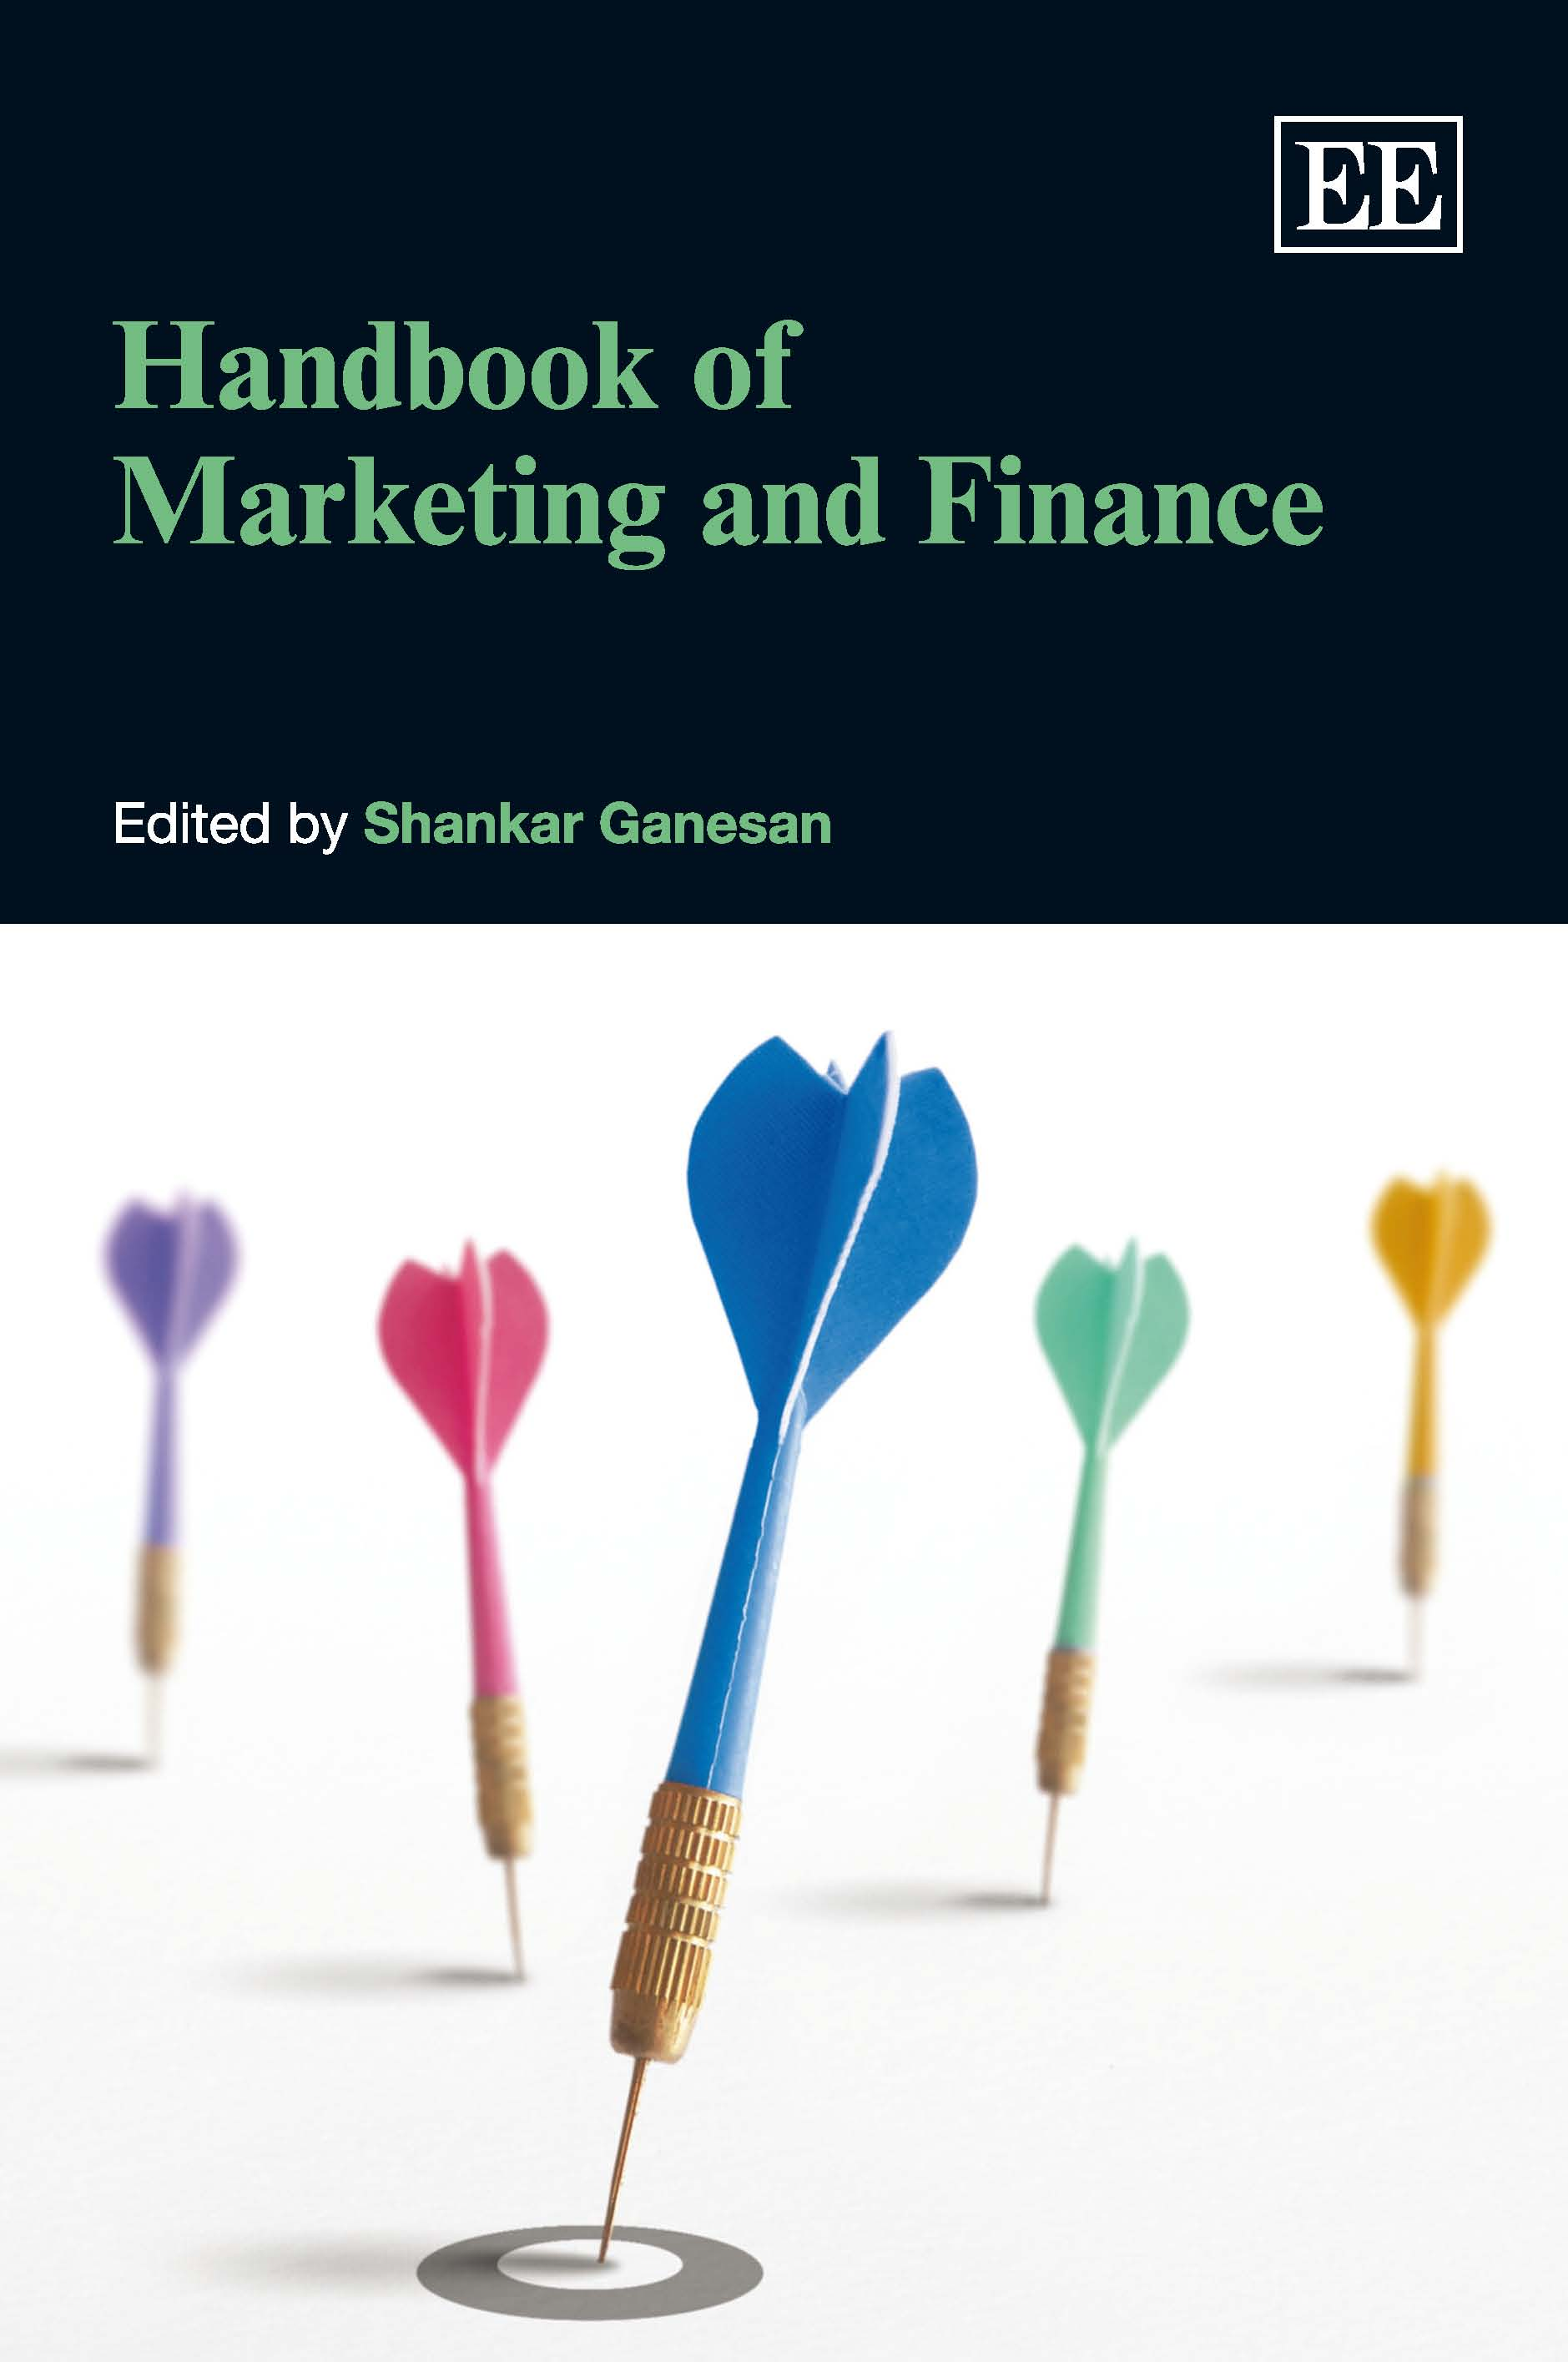 Download Ebook Handbook of Marketing and Finance by Shankar Ganesan Pdf